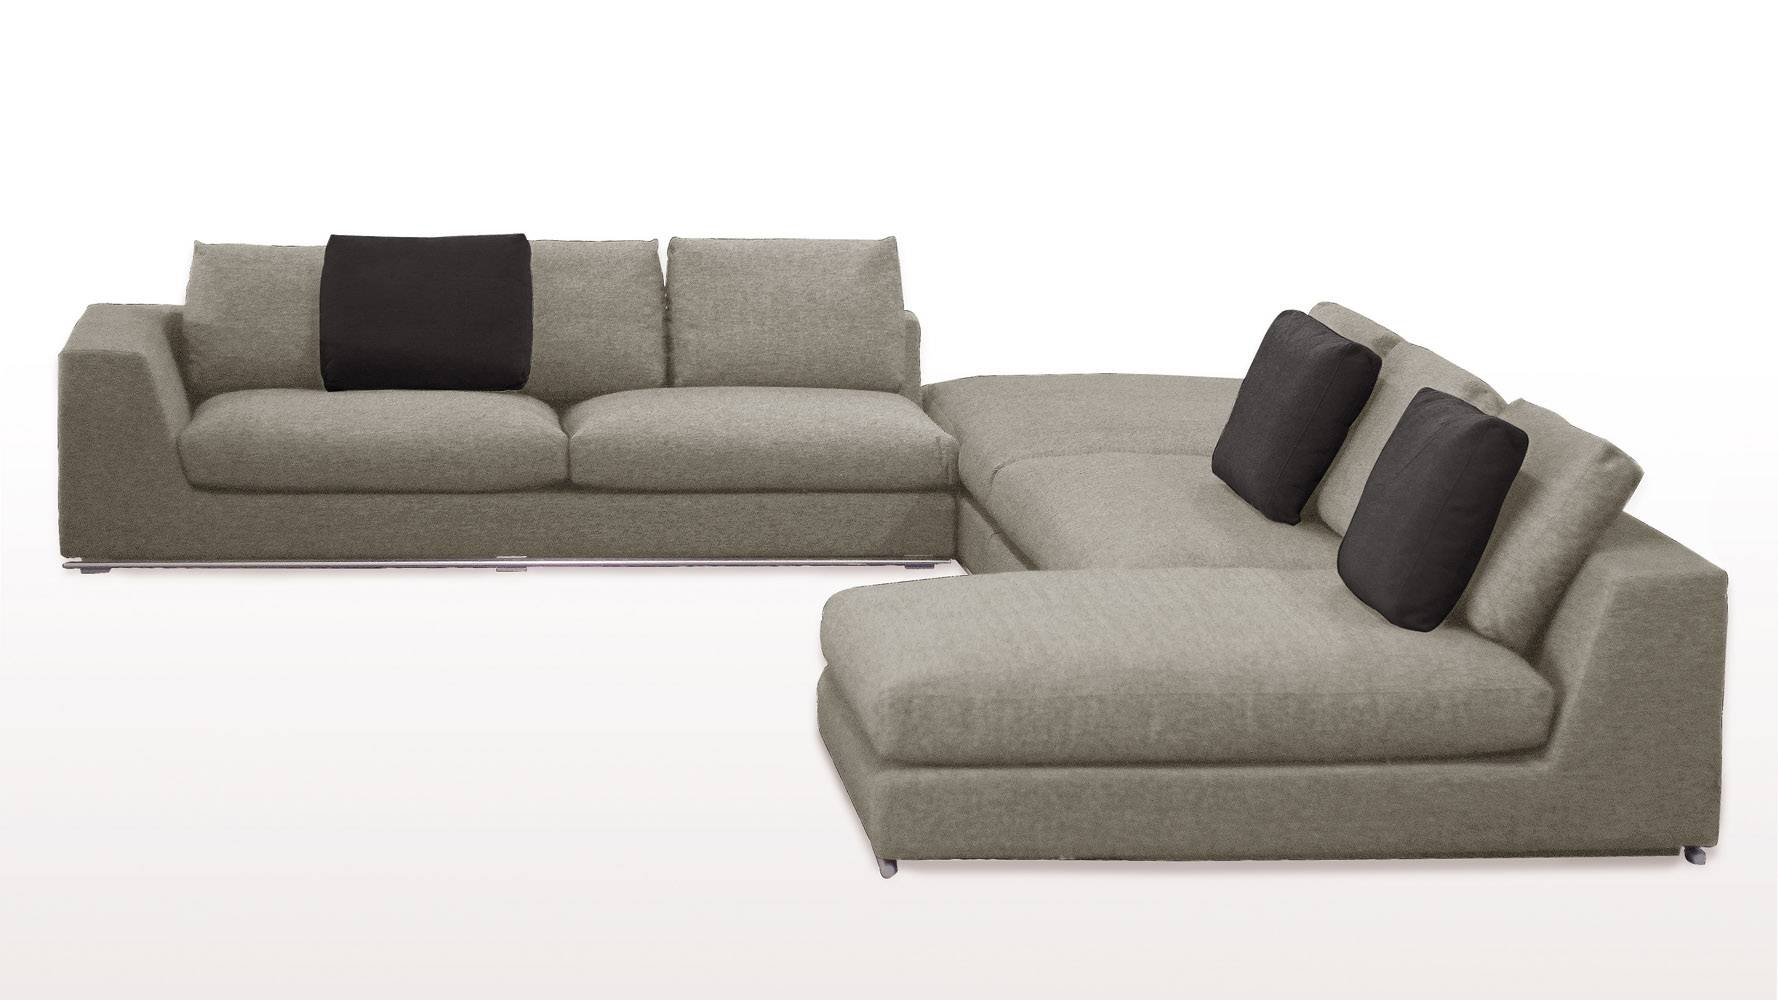 Comodo Sectional Sofa With Ottoman - Grey | Zuri Furniture inside Armless Sectional Sofa (Image 8 of 30)